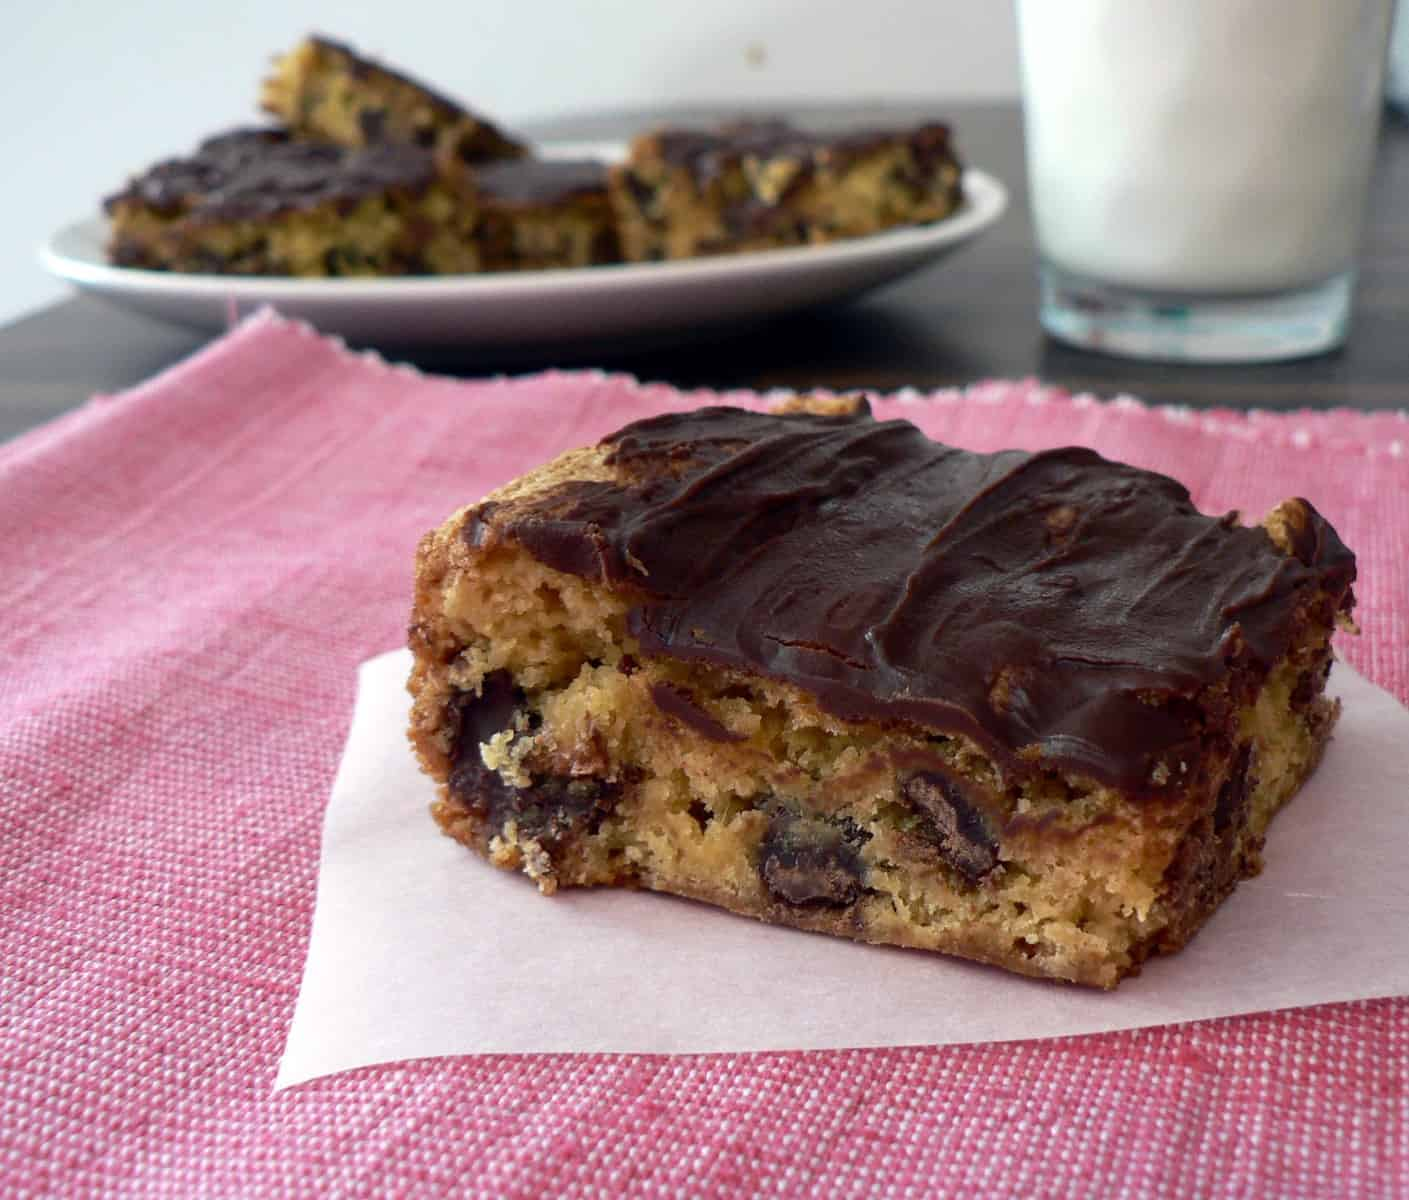 Cheater cookie bar recipes, cake mix bars, yellow cake mix cookies